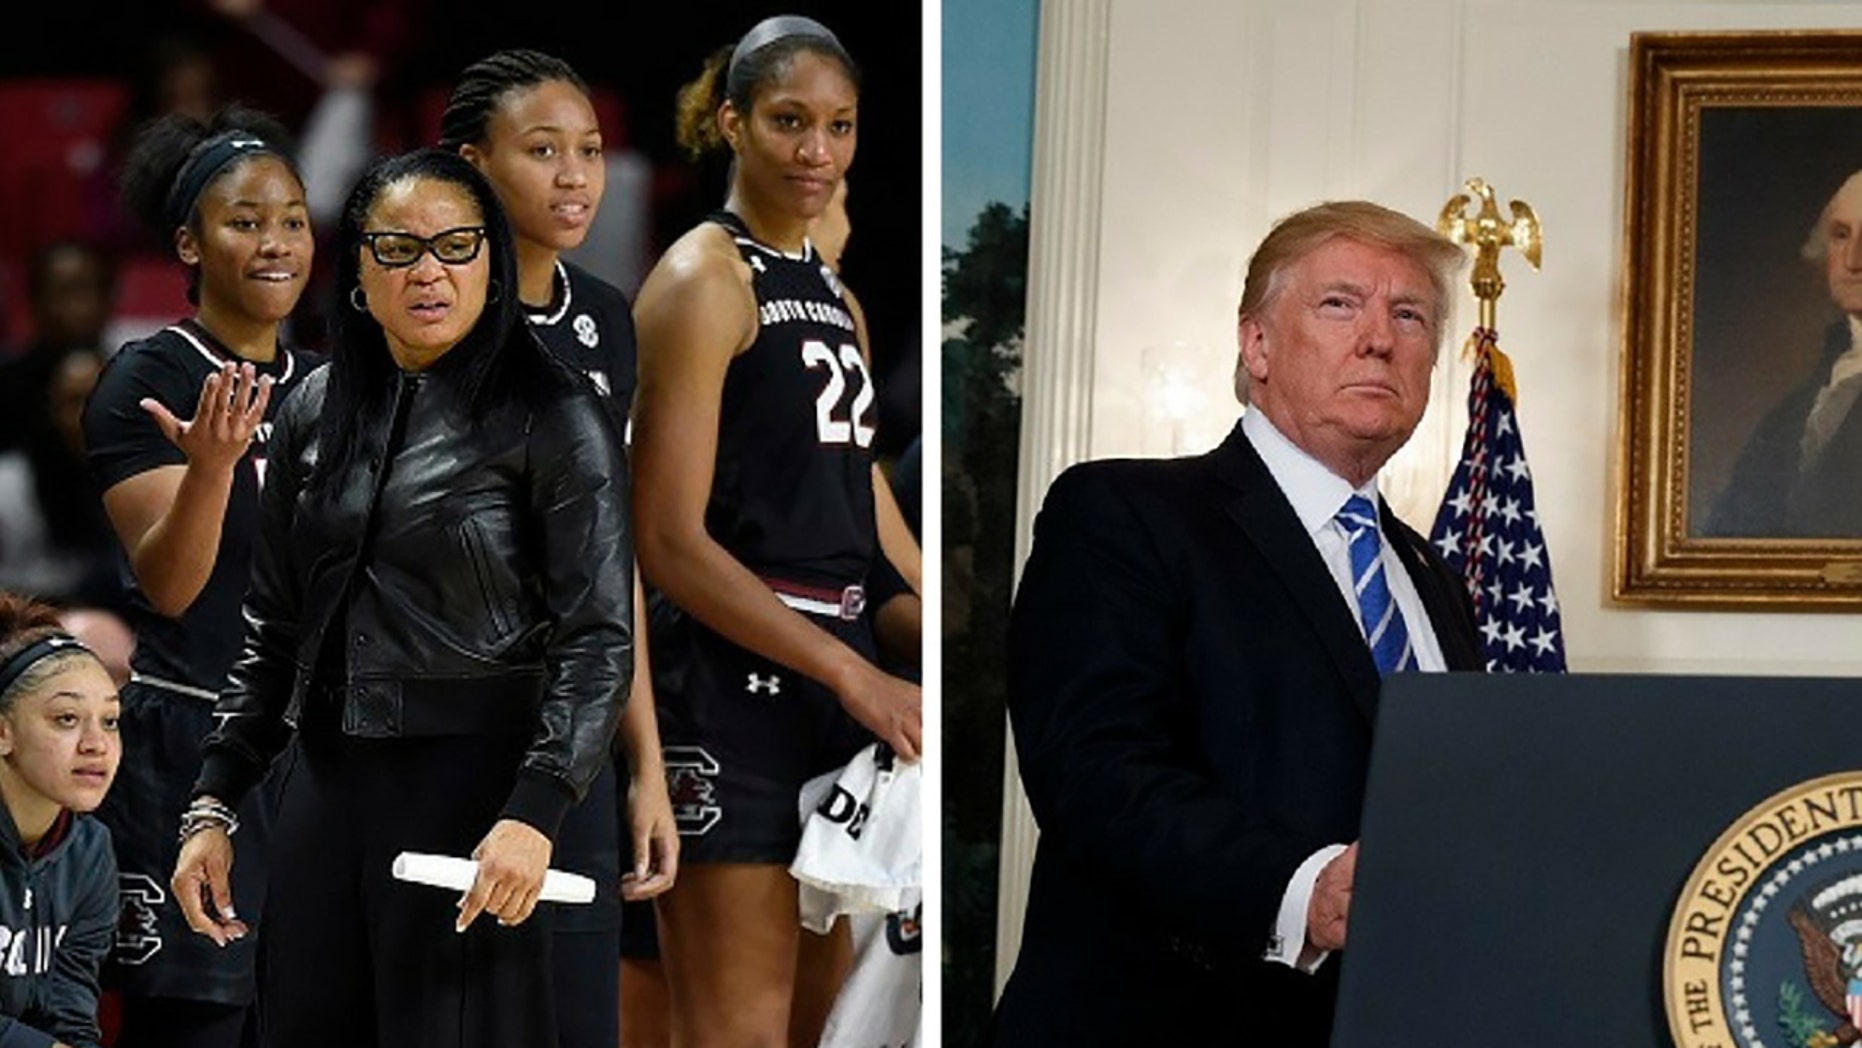 The South Carolina women's basketball team has declined President Trump's invite to the White House.